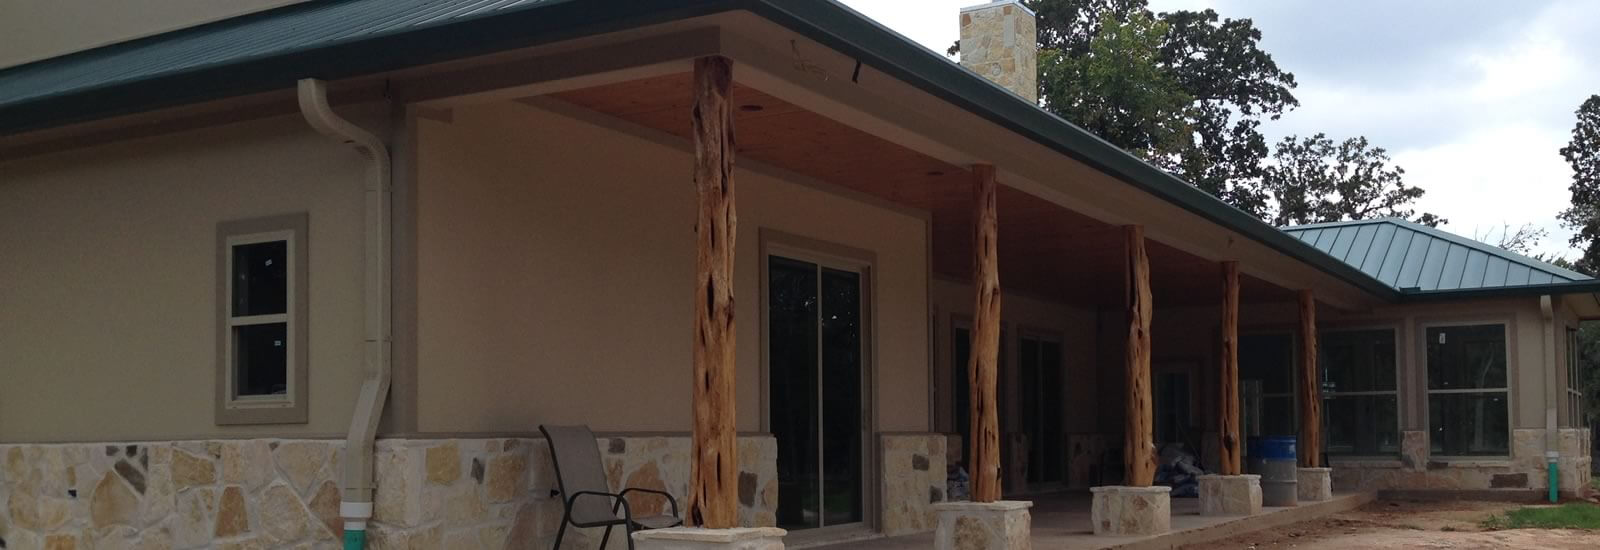 Superior gutters seamless rain gutters victora texas for Does a house need gutters